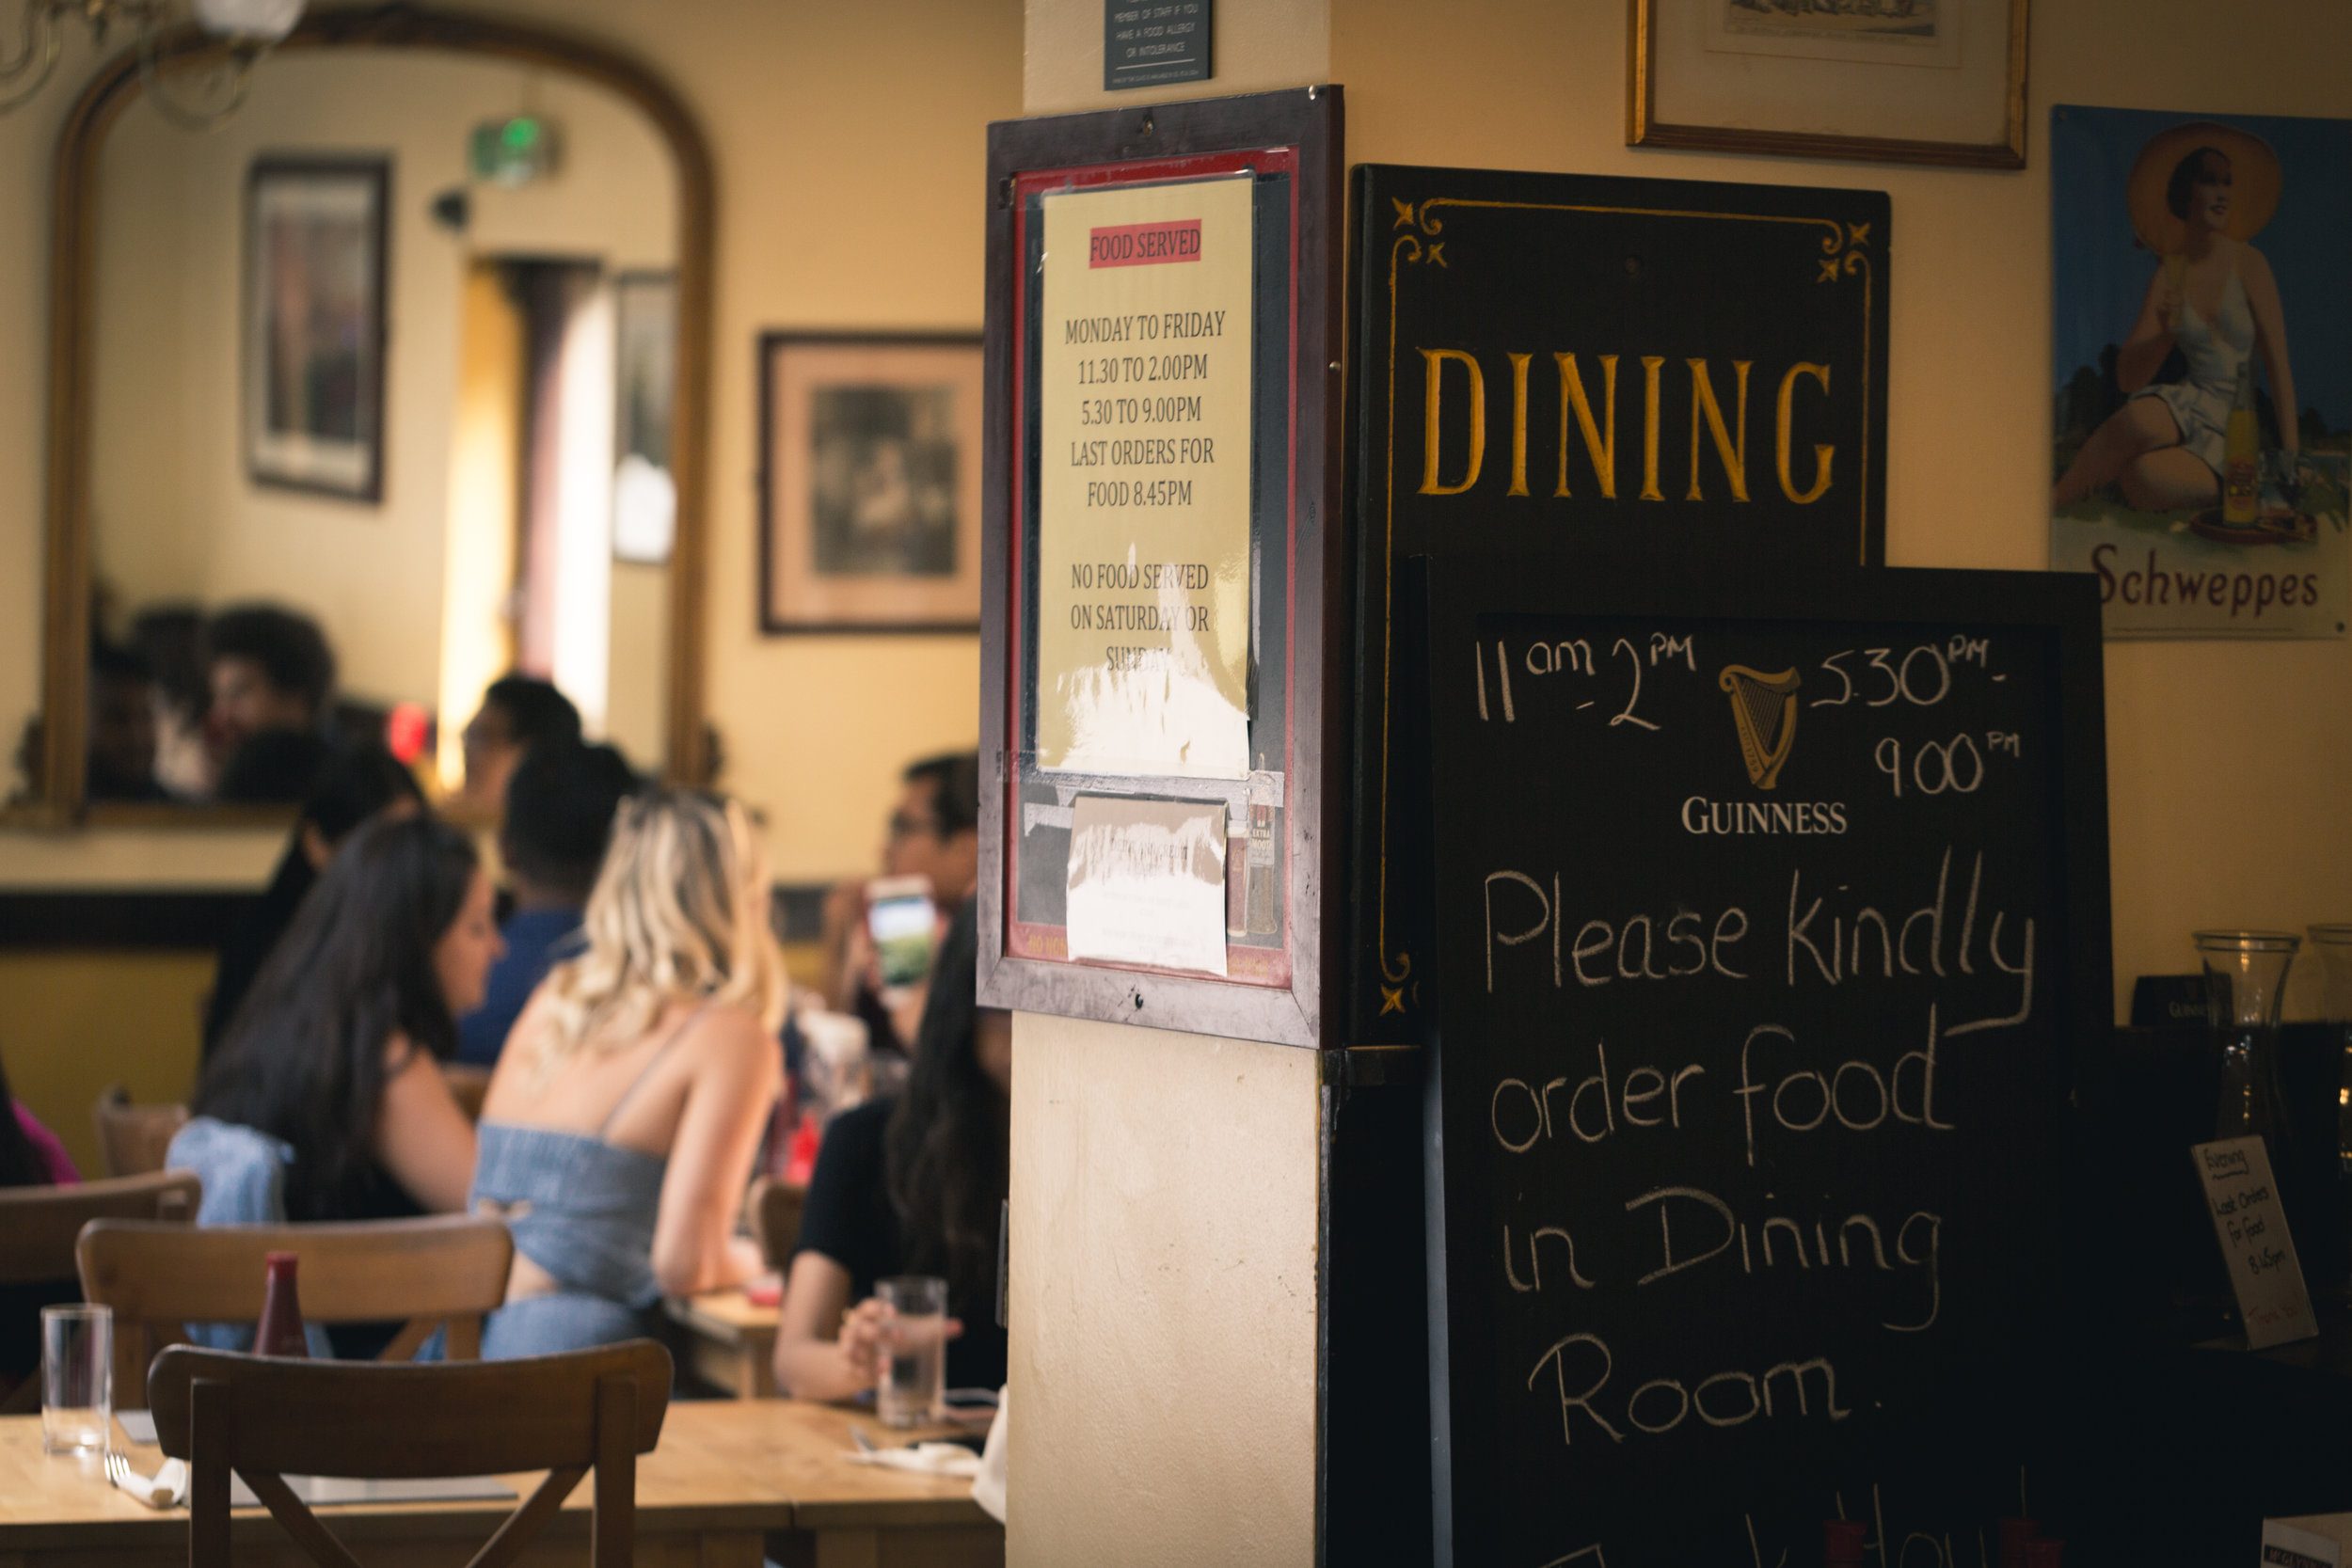 London pubs are a sure option for good food and a warm atmosphere, July 2019.